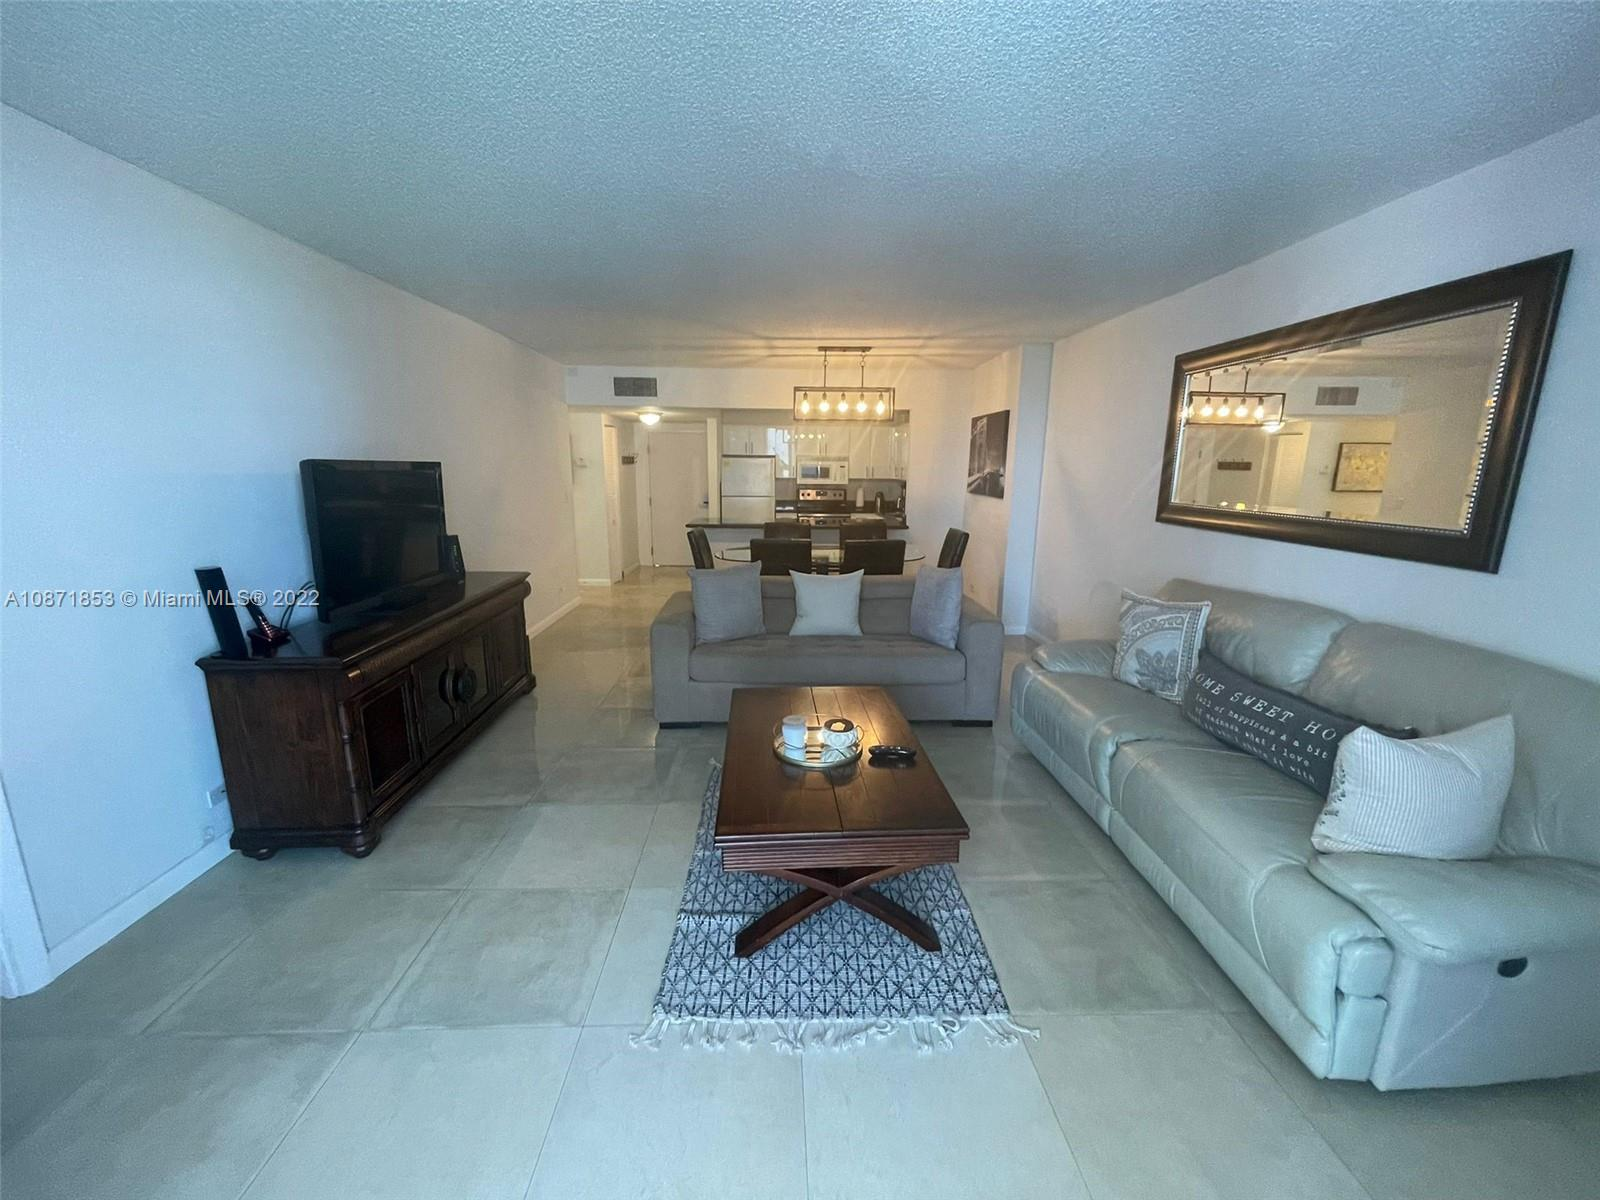 Roney Palace #803 - 2301 Collins Ave #803, Miami Beach, FL 33139